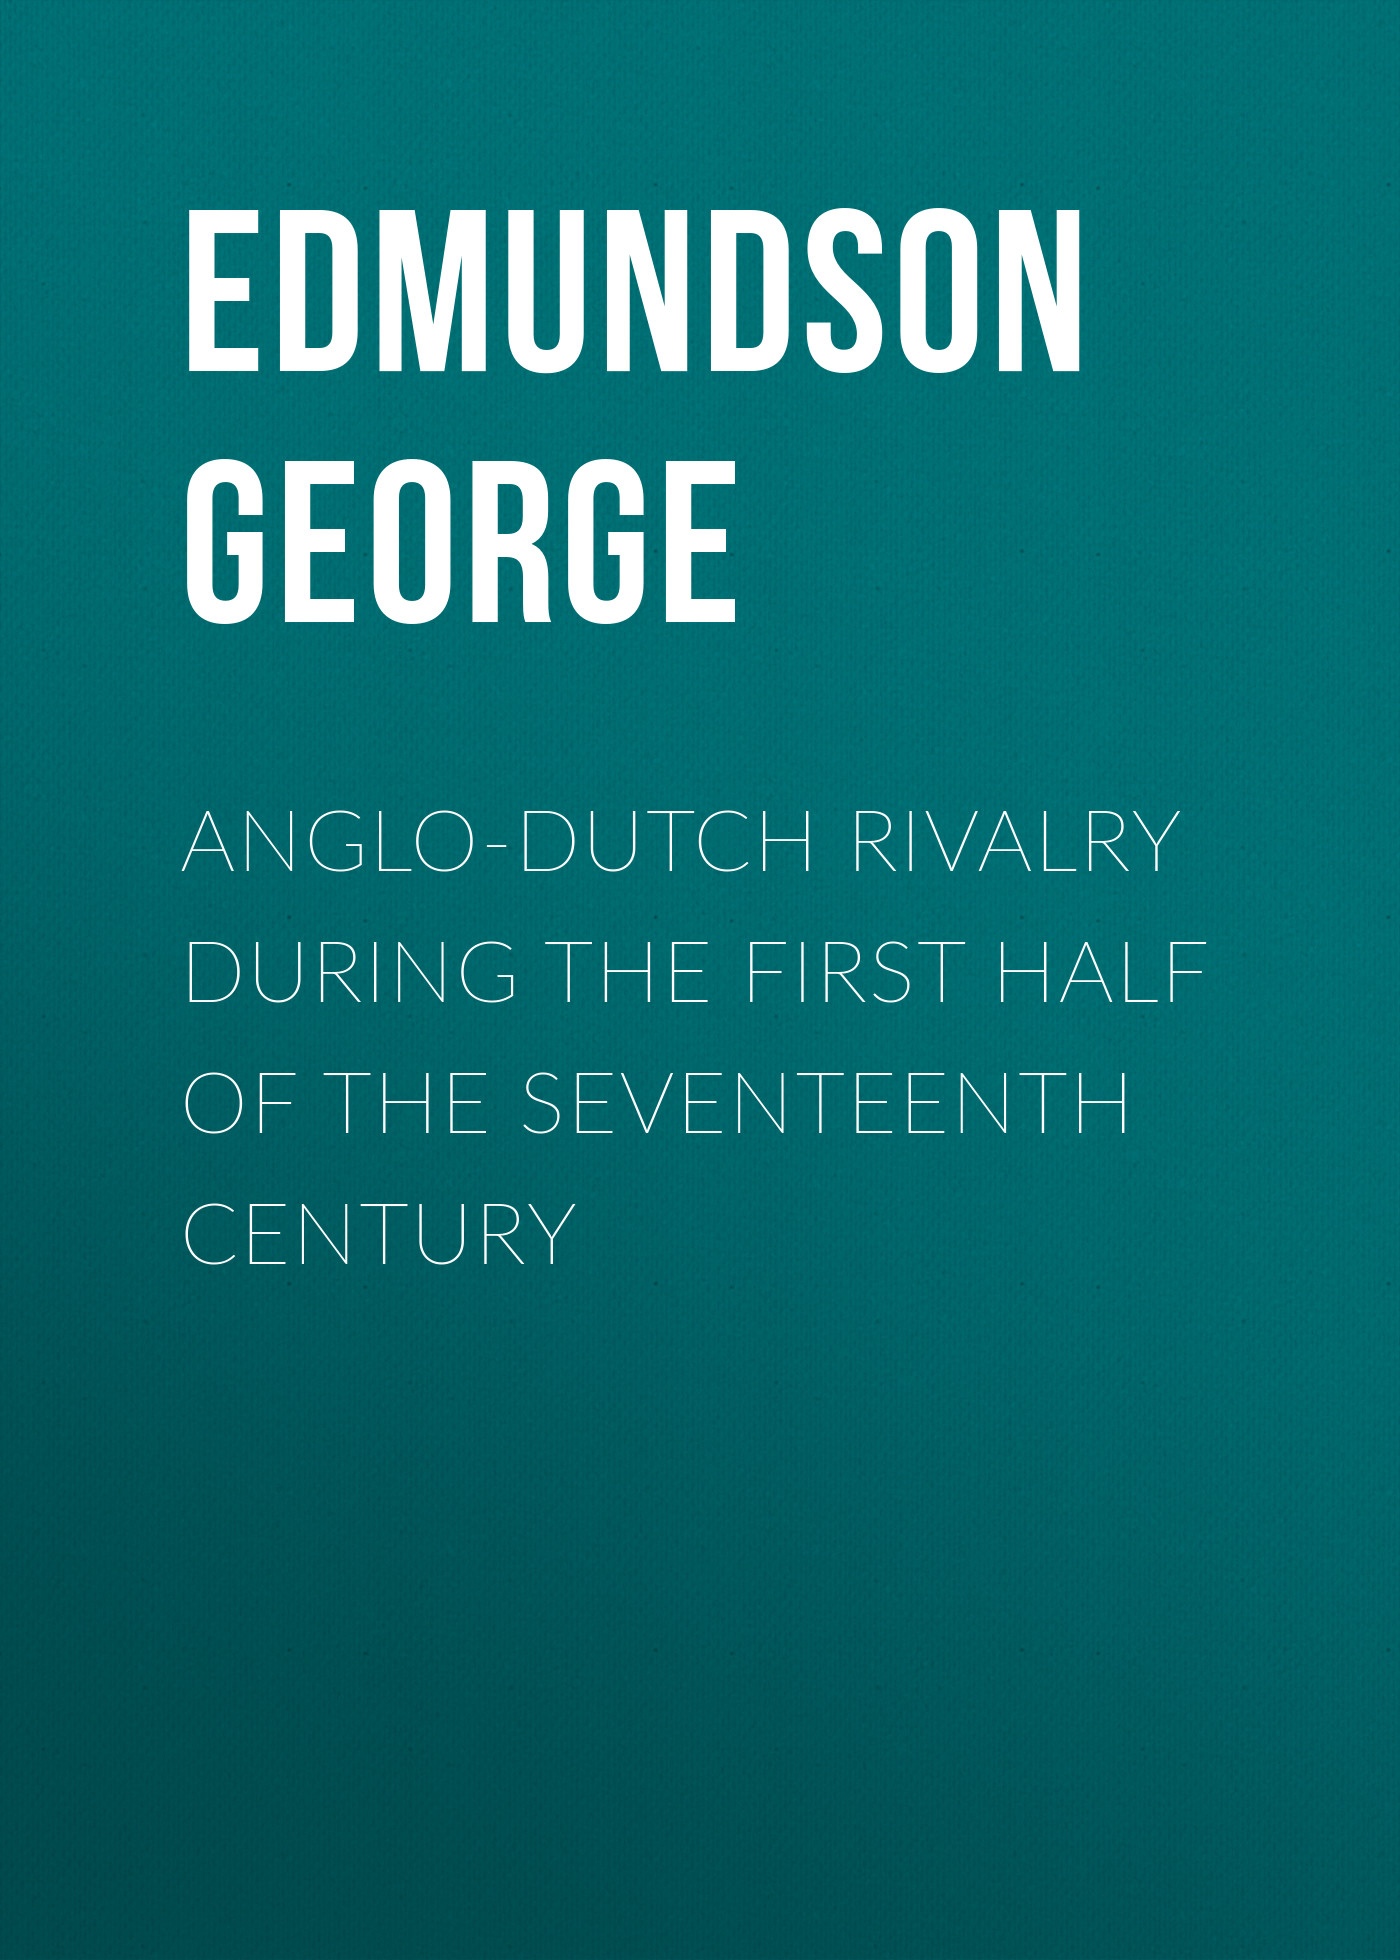 Edmundson George Anglo-Dutch Rivalry during the First Half of the Seventeenth Century marshall grossman the seventeenth century literature handbook